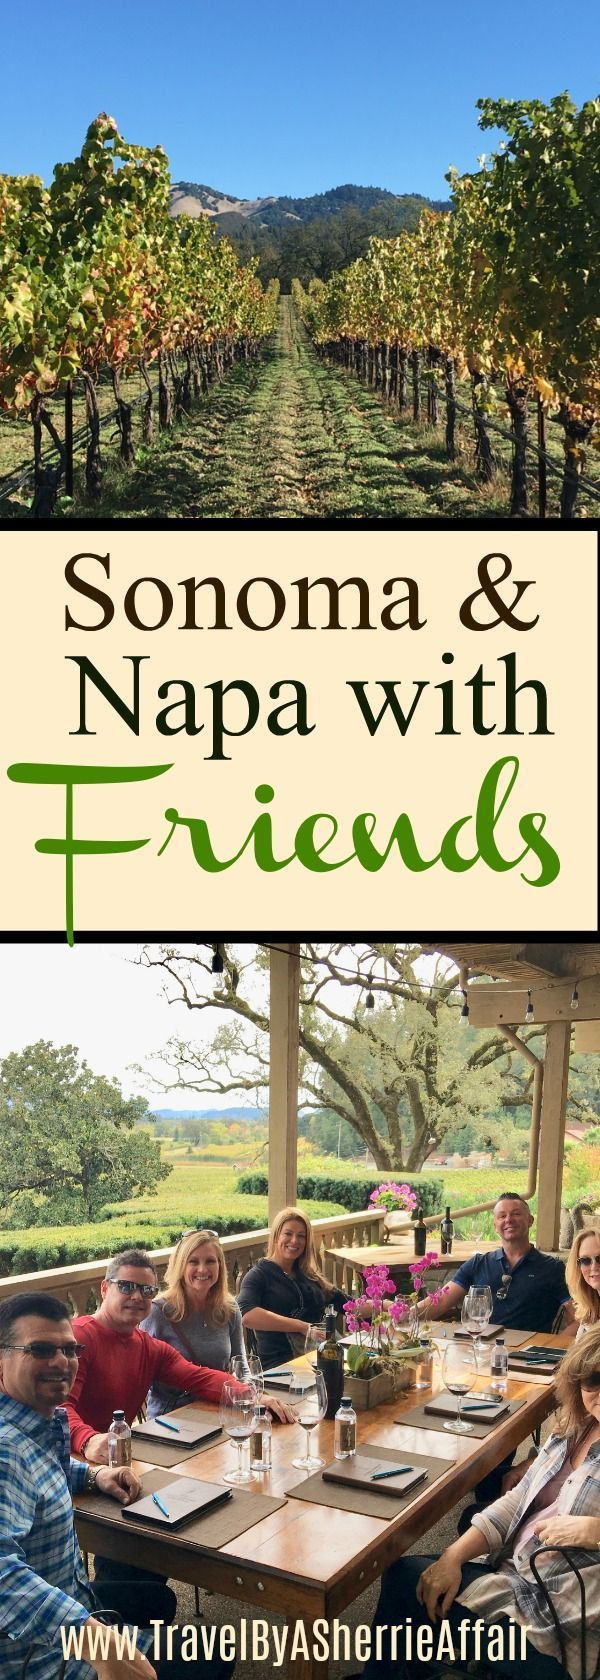 There is nothing better than traveling with good friends and when you all go to Sonoma and Napa Valley in California, United States for a fun vacation...well it's all fantastic!  #Sonoma #NapaValley #friends #Travel #travelwithfriends #California #wine #winecountry #Lassetervineyard #Buenavistawinery #RussianRiverVineyards #JosephCellars #PetroniVineyards